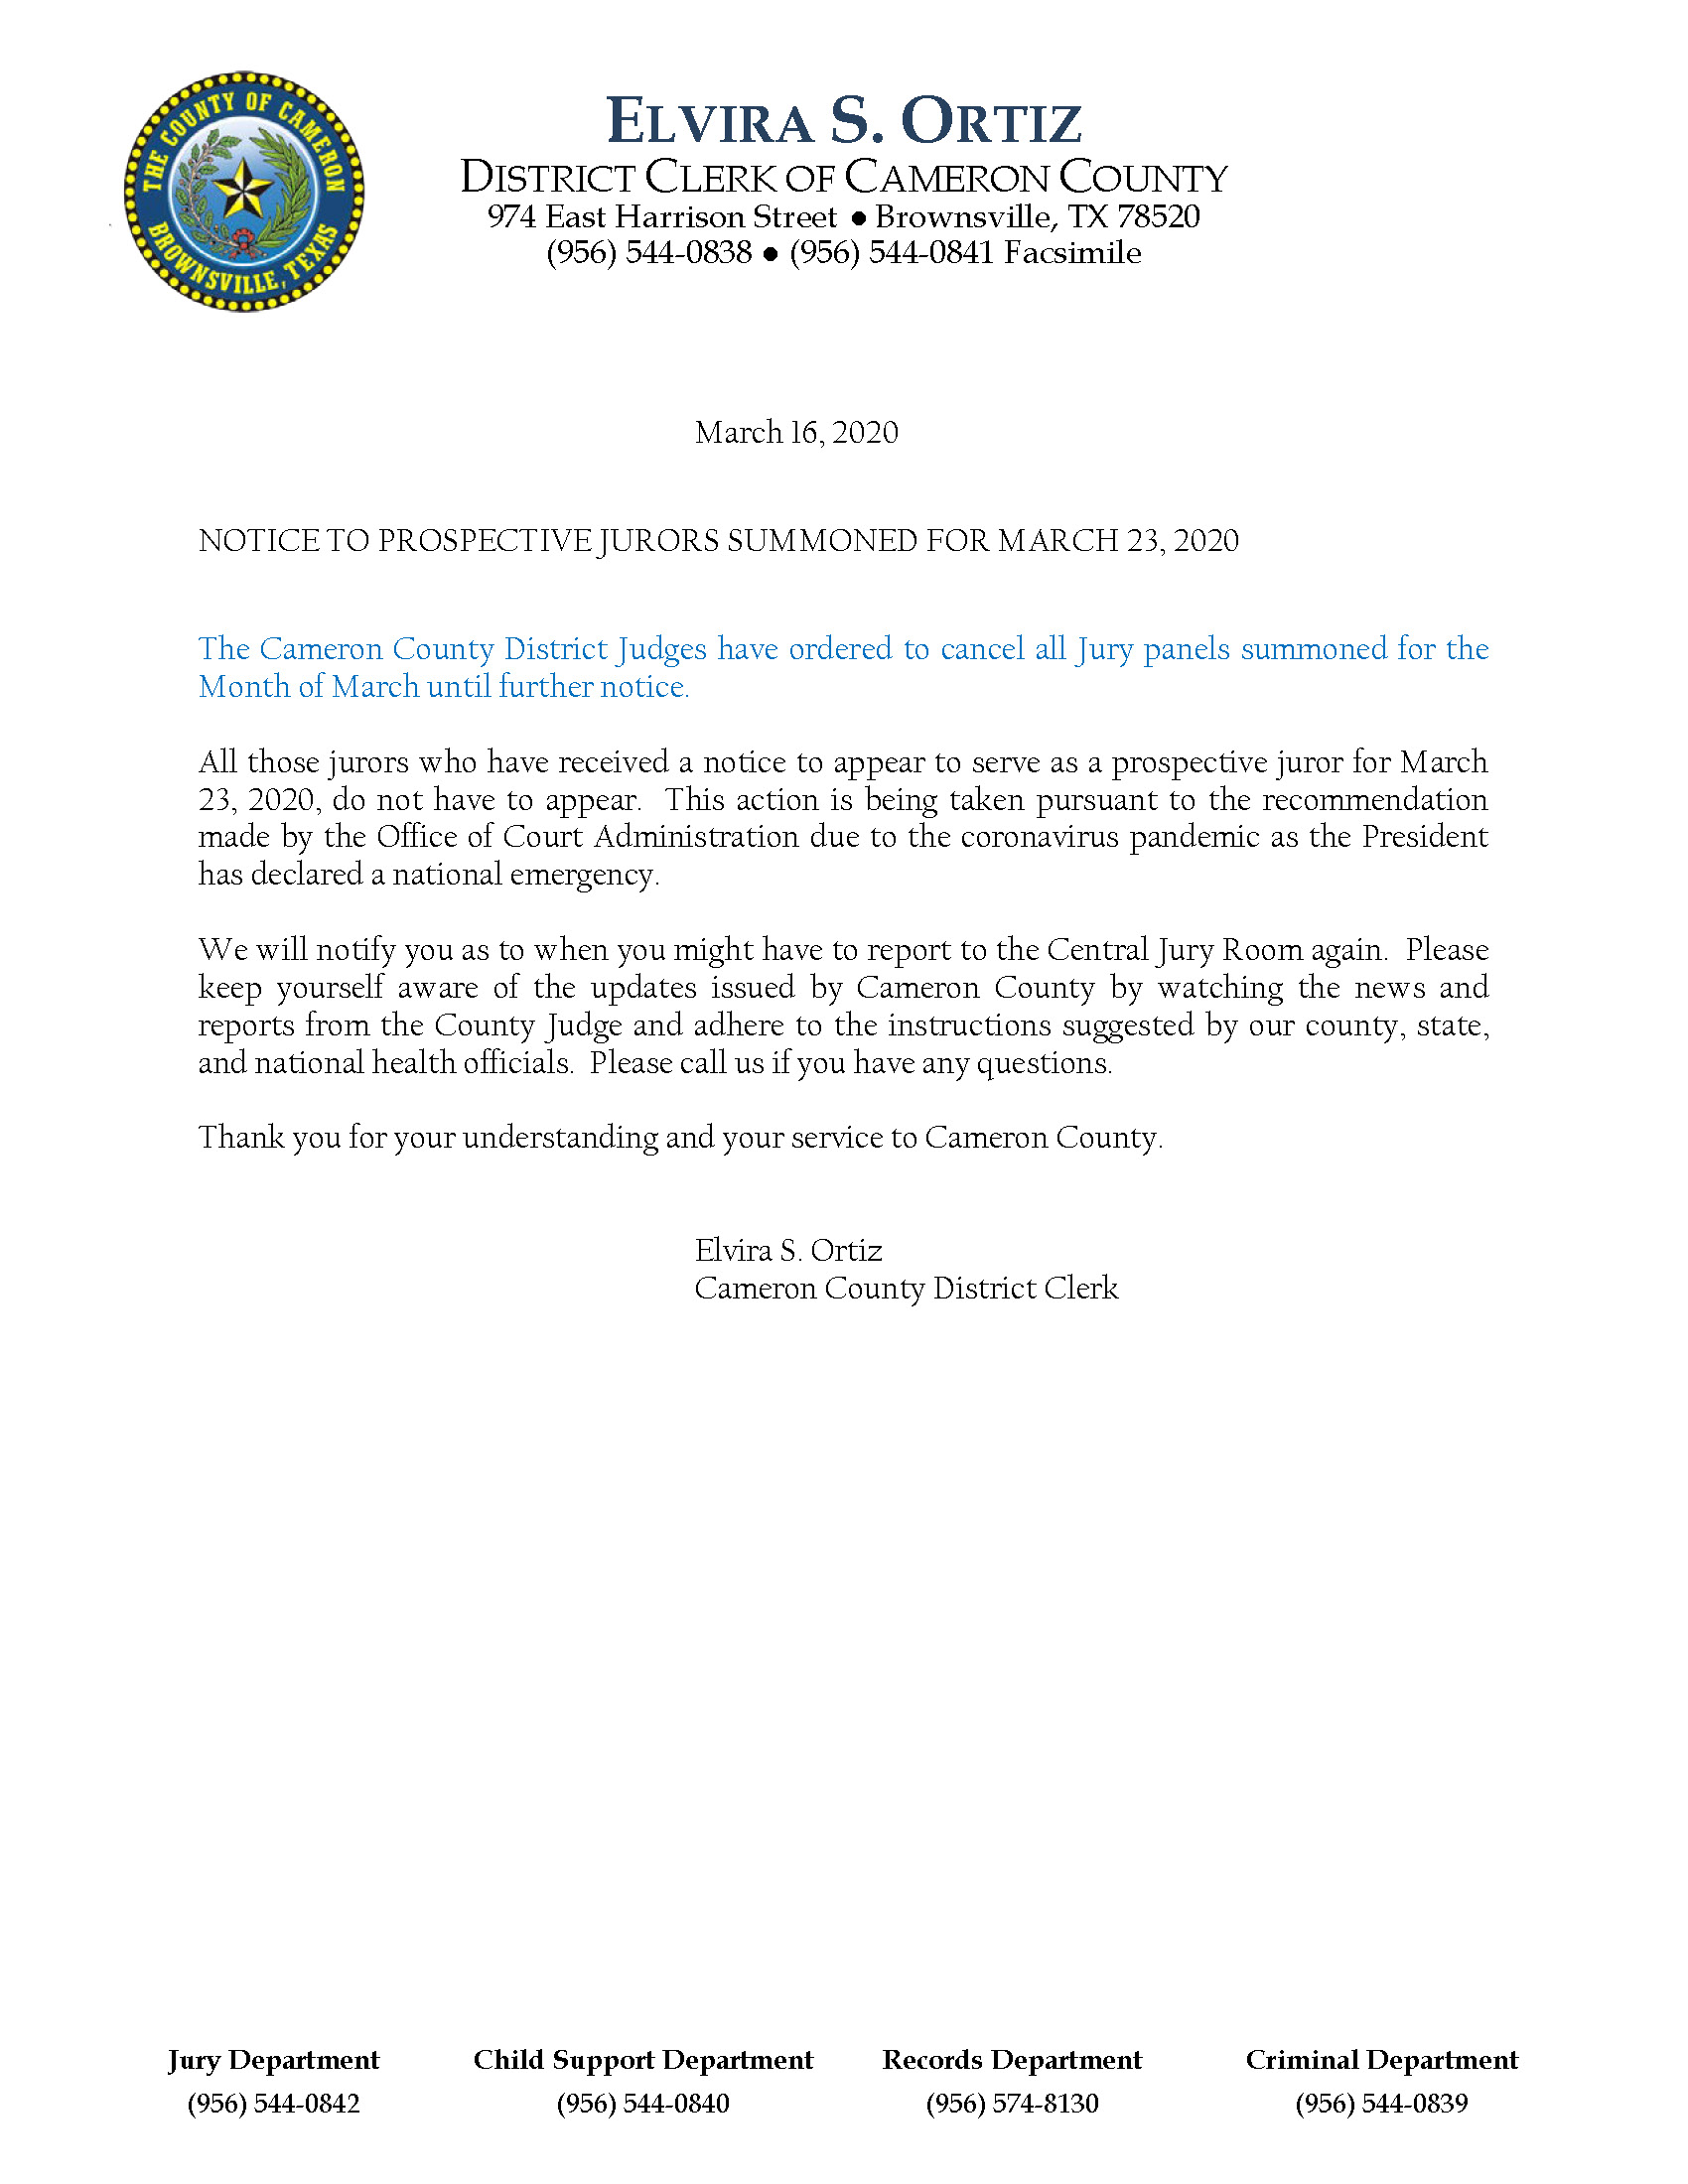 NOTICE TO JURORS FOR MARCH 2020